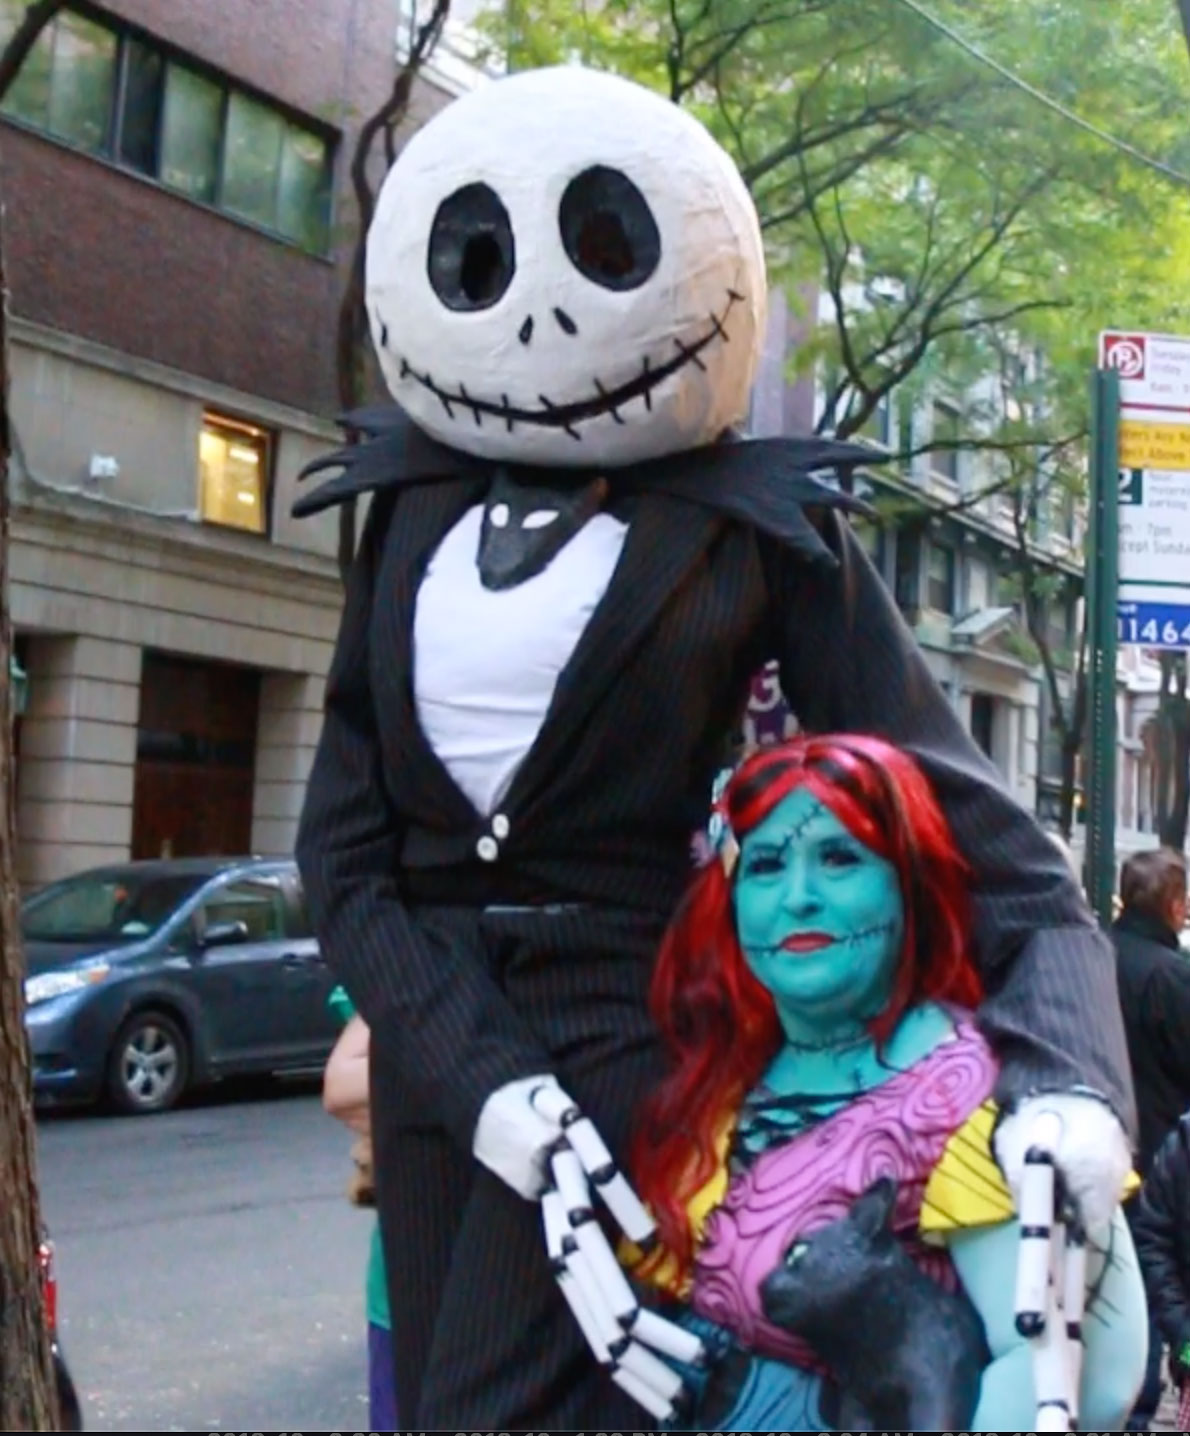 <div class='meta'><div class='origin-logo' data-origin='none'></div><span class='caption-text' data-credit=''>This pair dressed up as Sally and Jack from ''Nightmare Before Christmas.''</span></div>